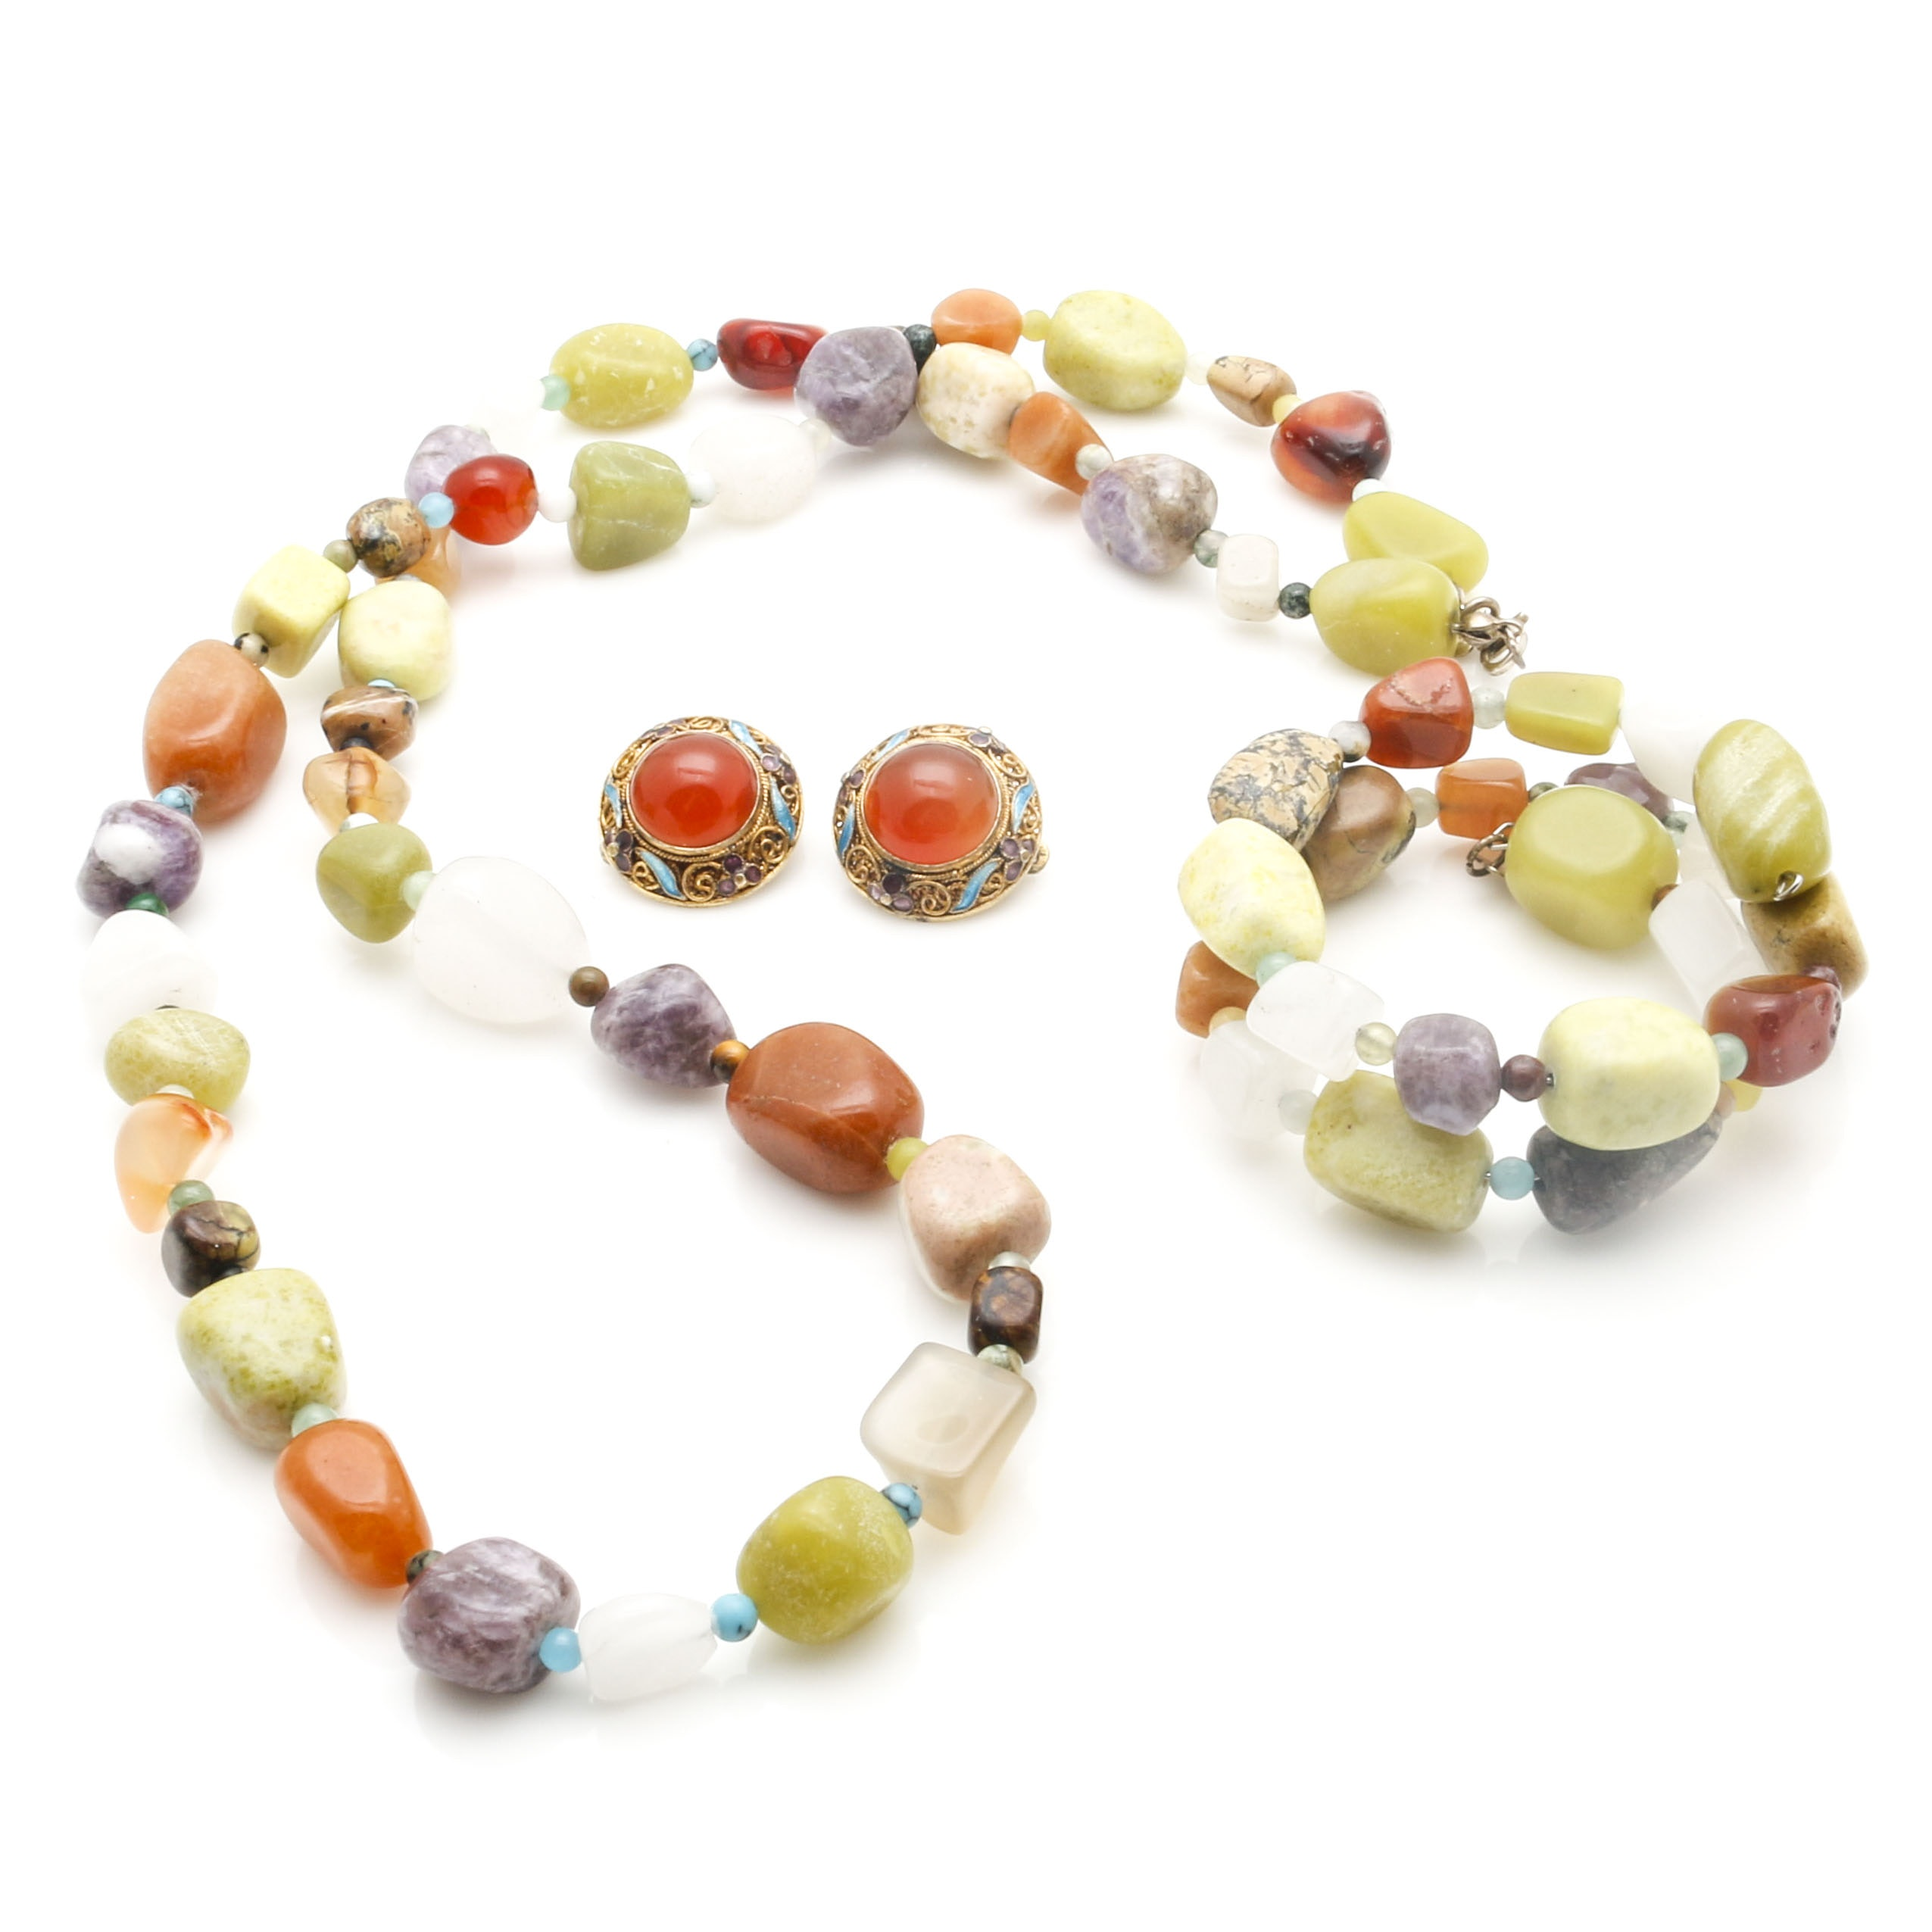 Matching Beaded Necklace and Bracelet Set With Sterling Silver Enamel Earrings